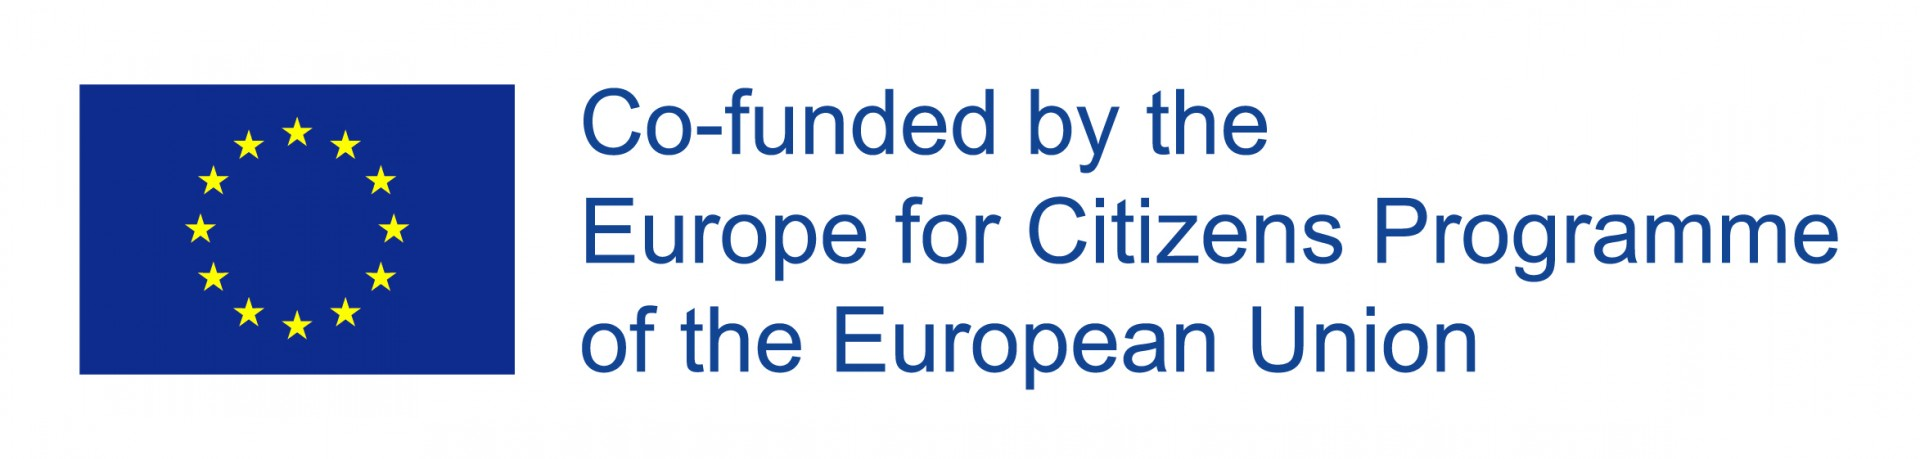 1571906083_eu_flag_europe_for_citizens_co_funded_en_rgb_right_.jpg